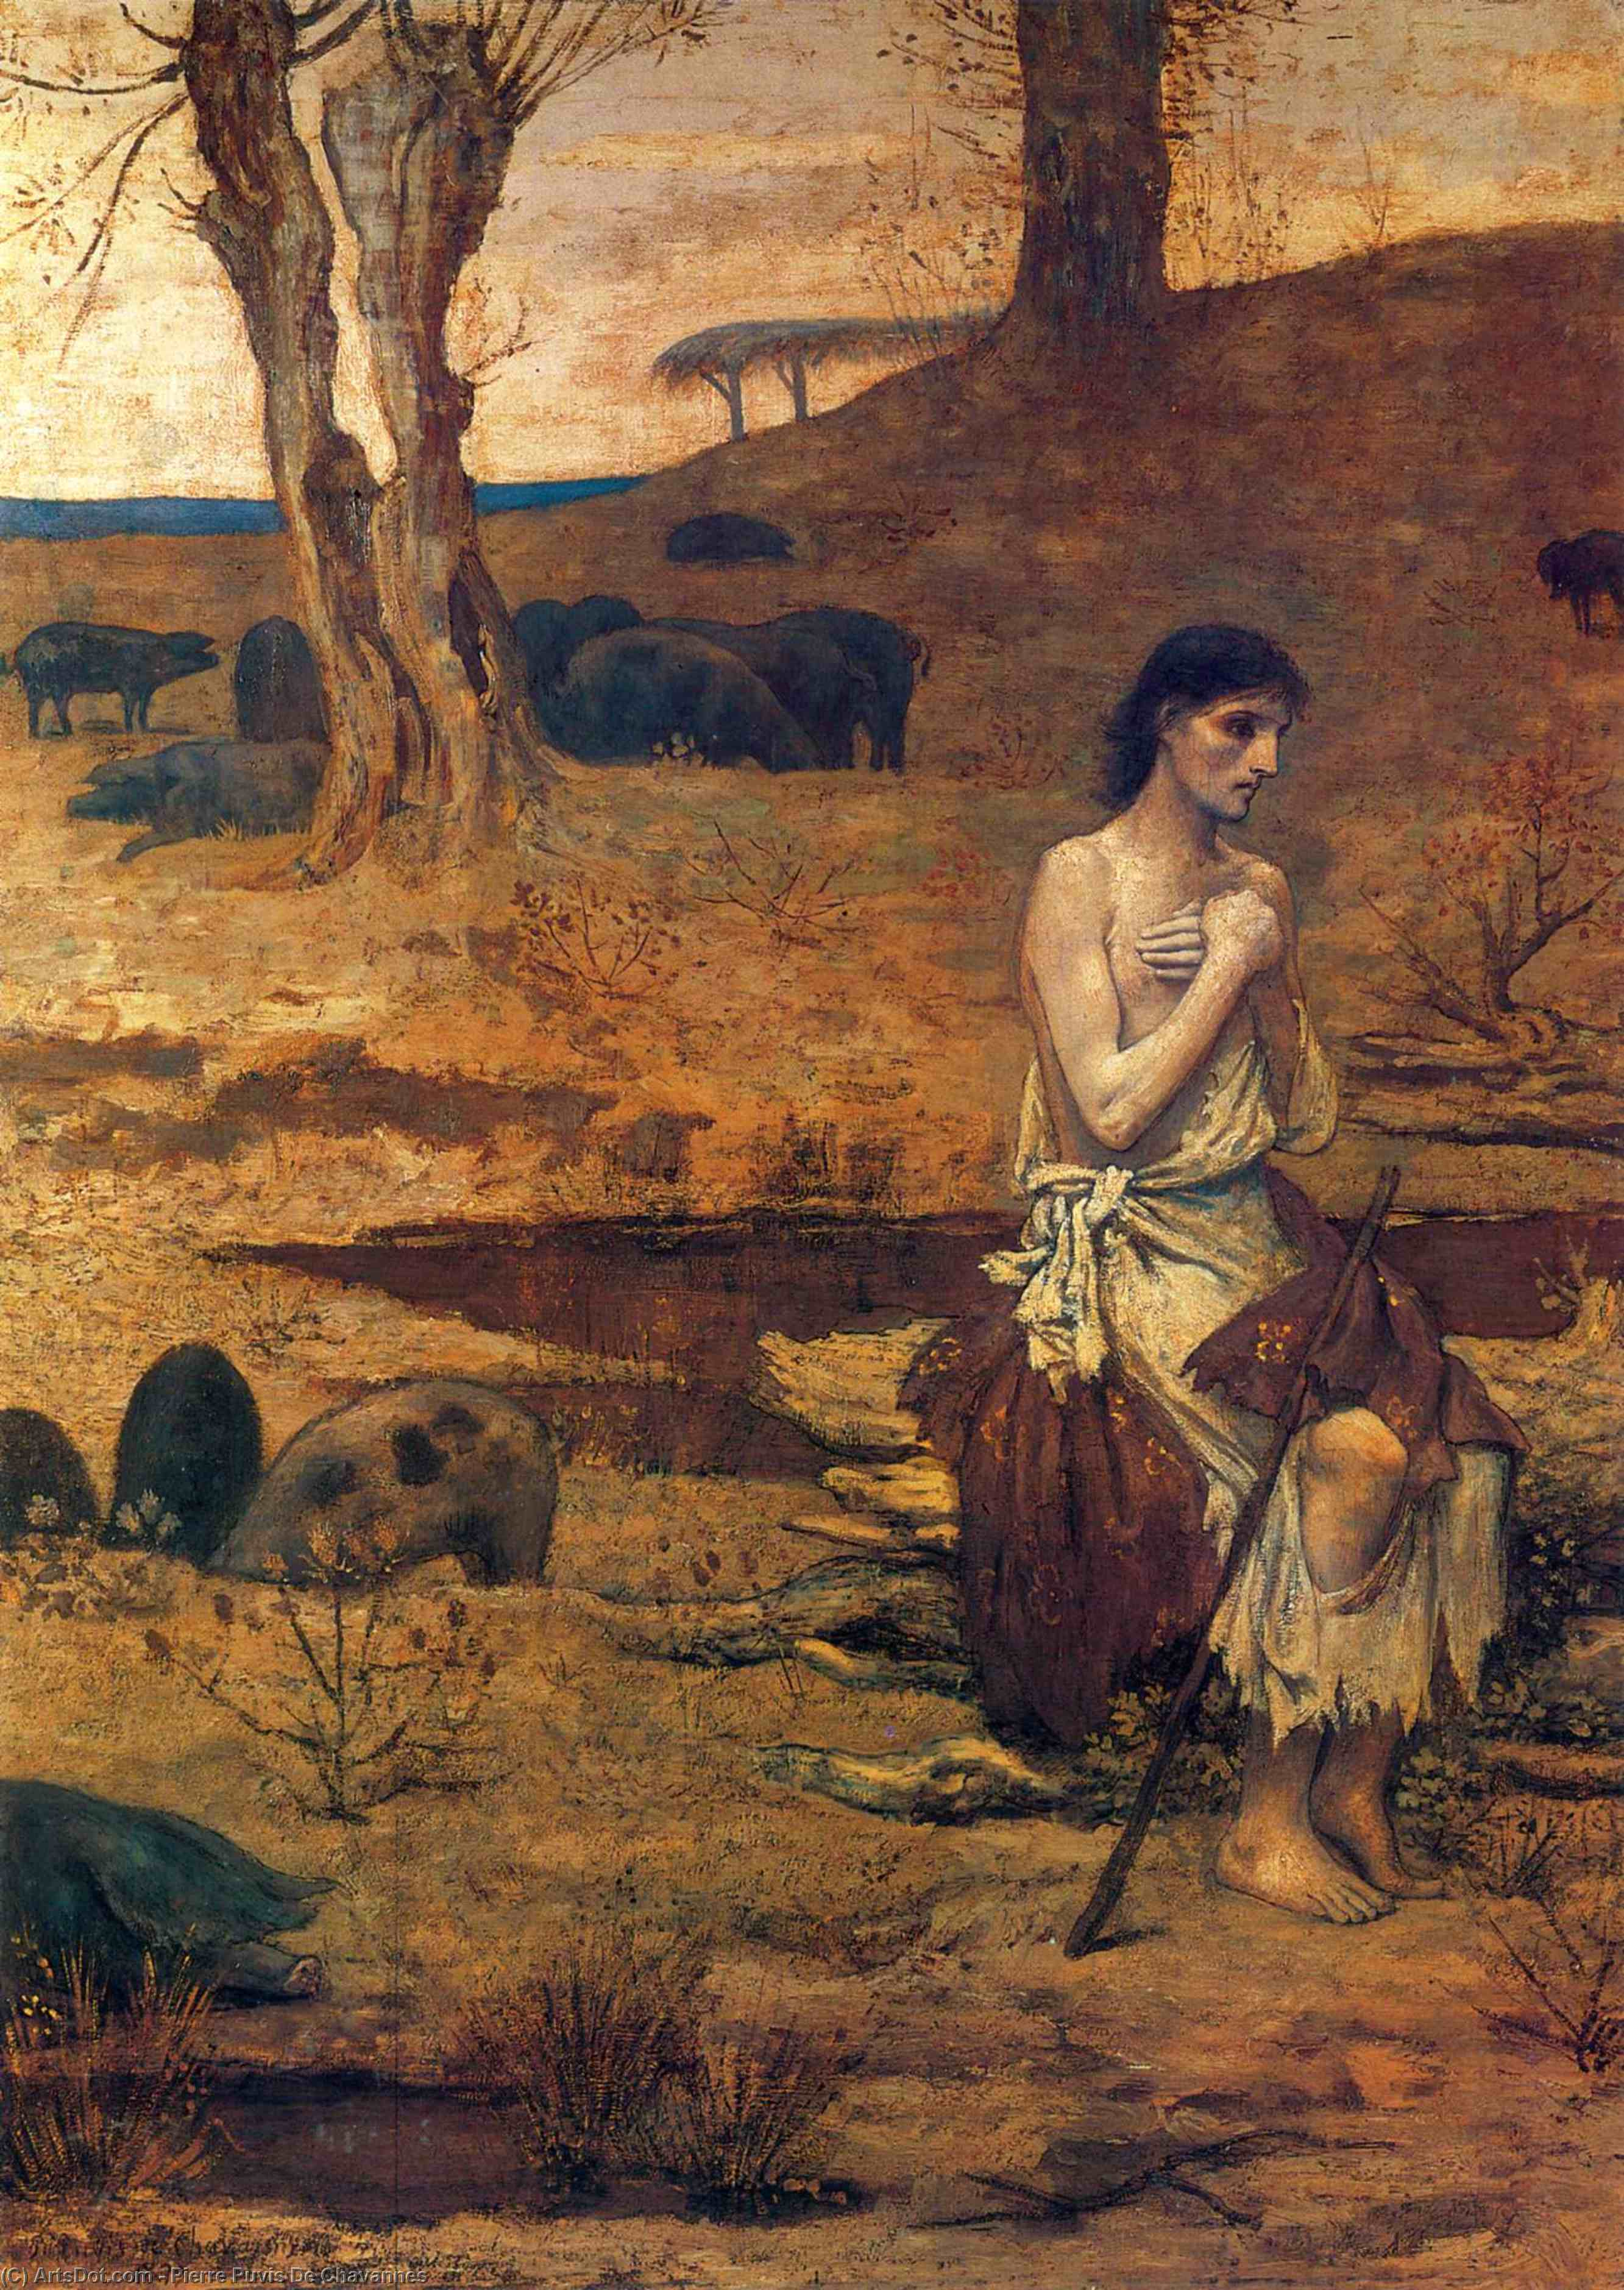 Блудный сын, холст, масло по Pierre Puvis De Chavannes (1824-1898, France)